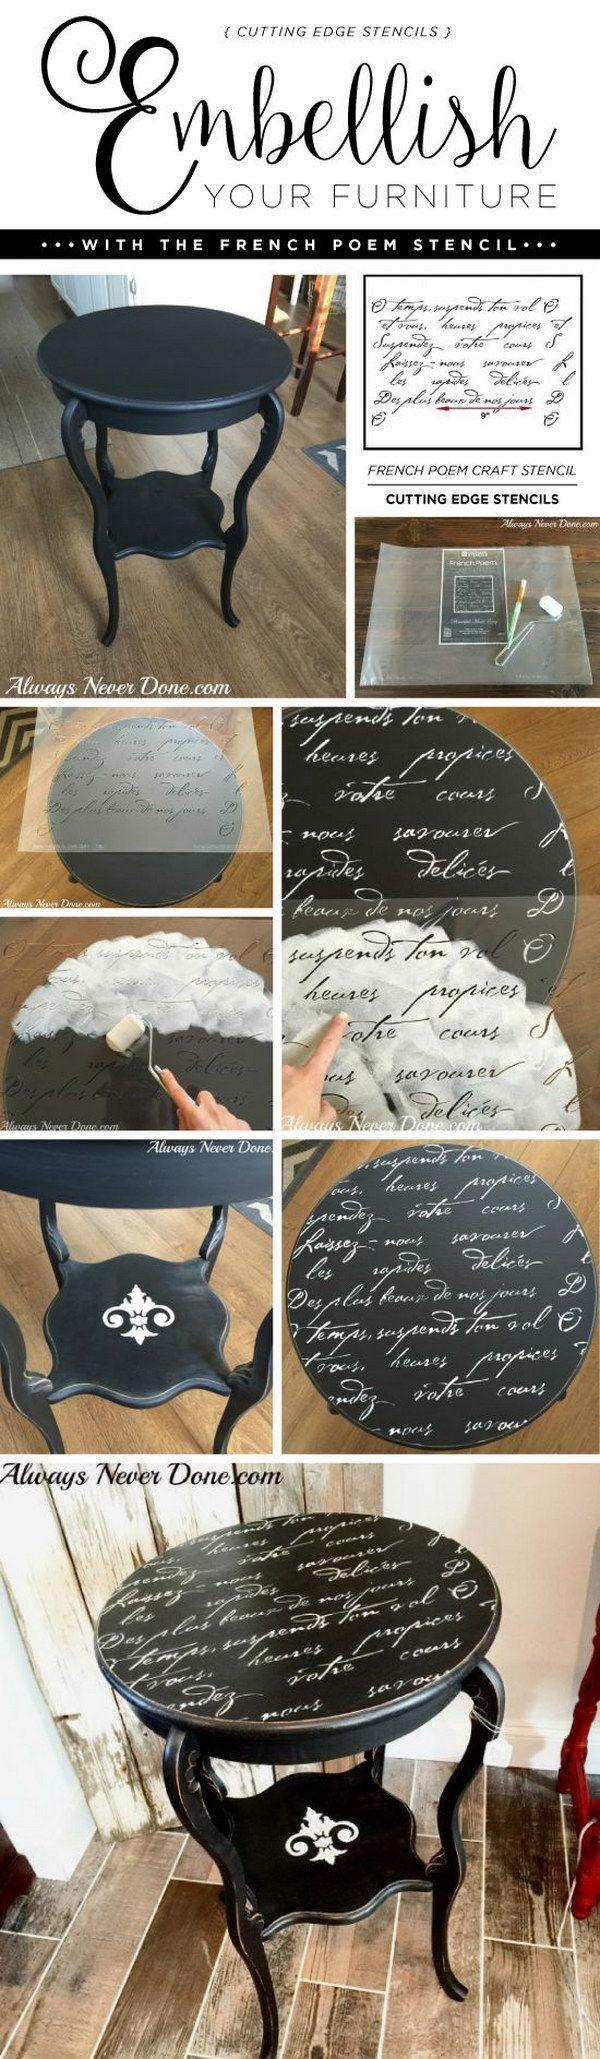 Embellish Your Furniture With the French Poem Stencil. | Ideas ...